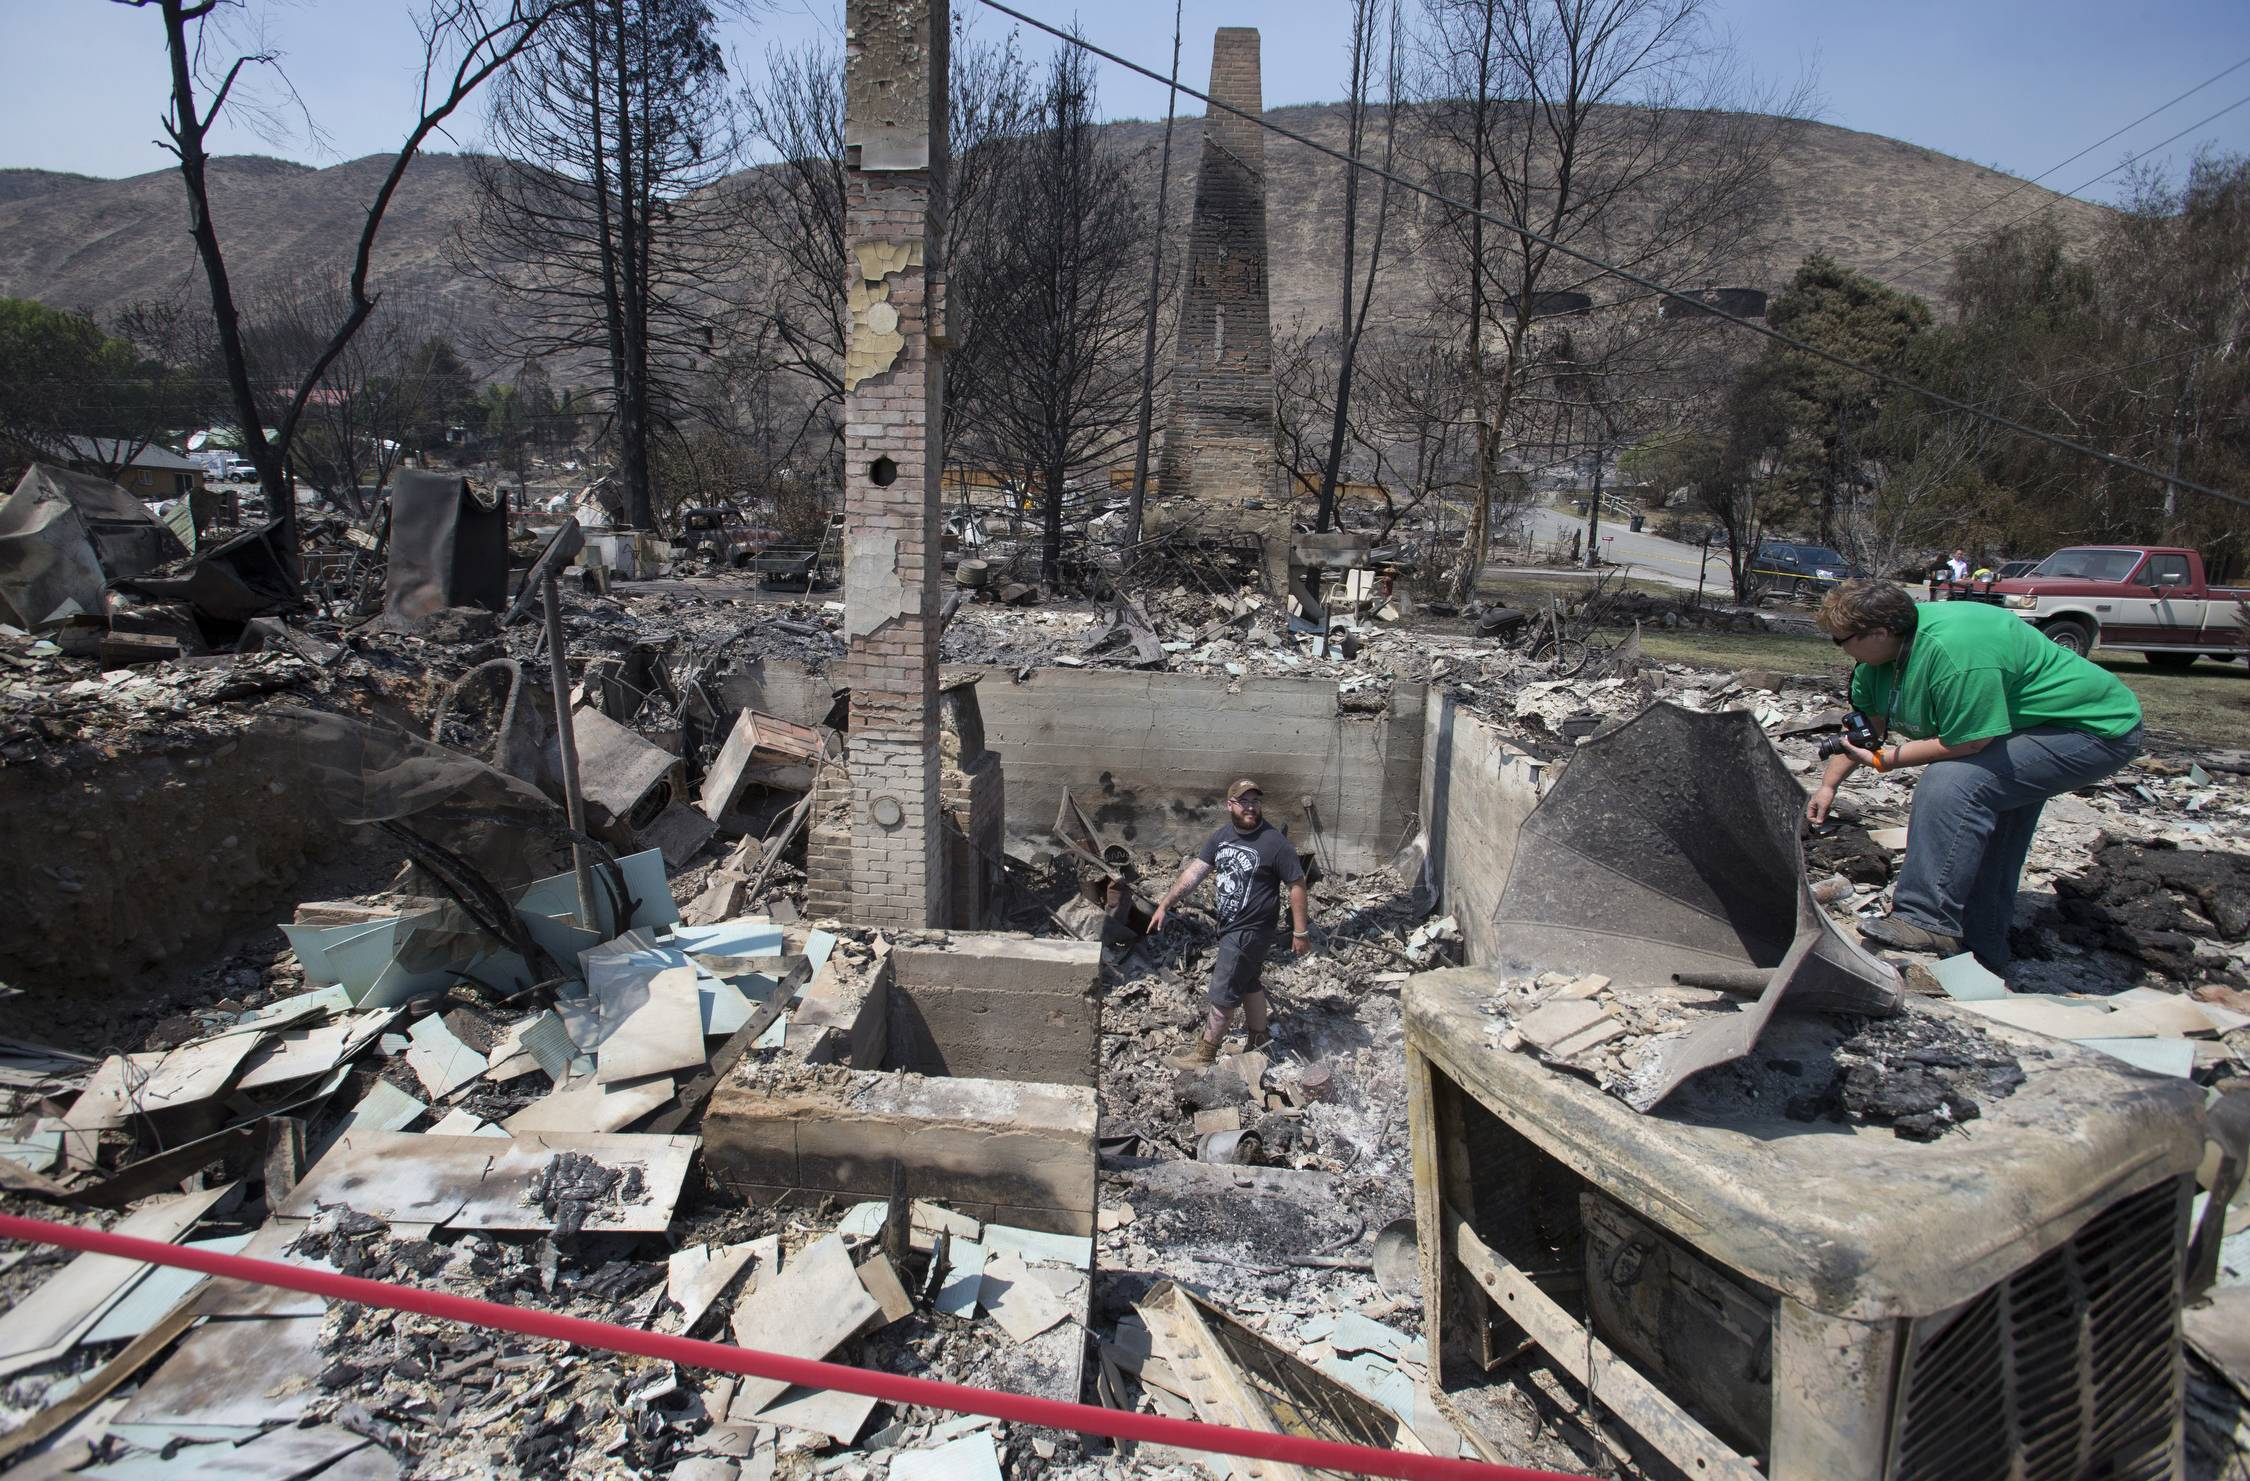 Jake Hixon and Kathy Harding look for family heirlooms they may have been spared at a relative's house after the fire that swept through Pateros, Wash., last Thursday.